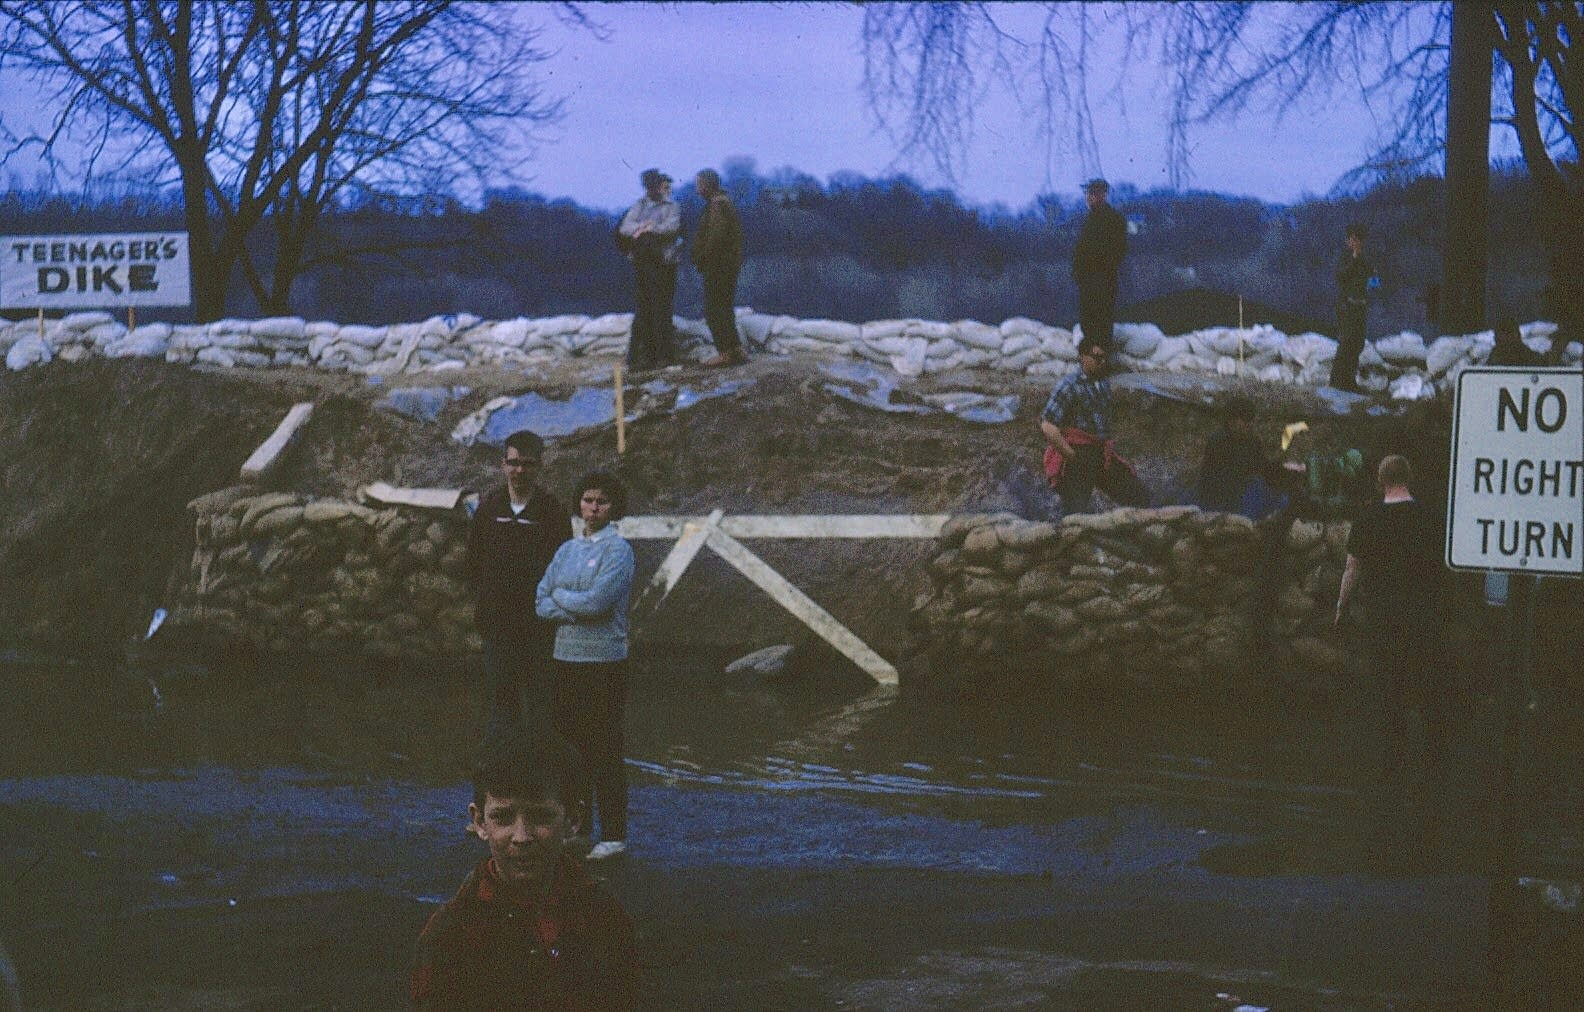 People stand on Teenager's Dike.